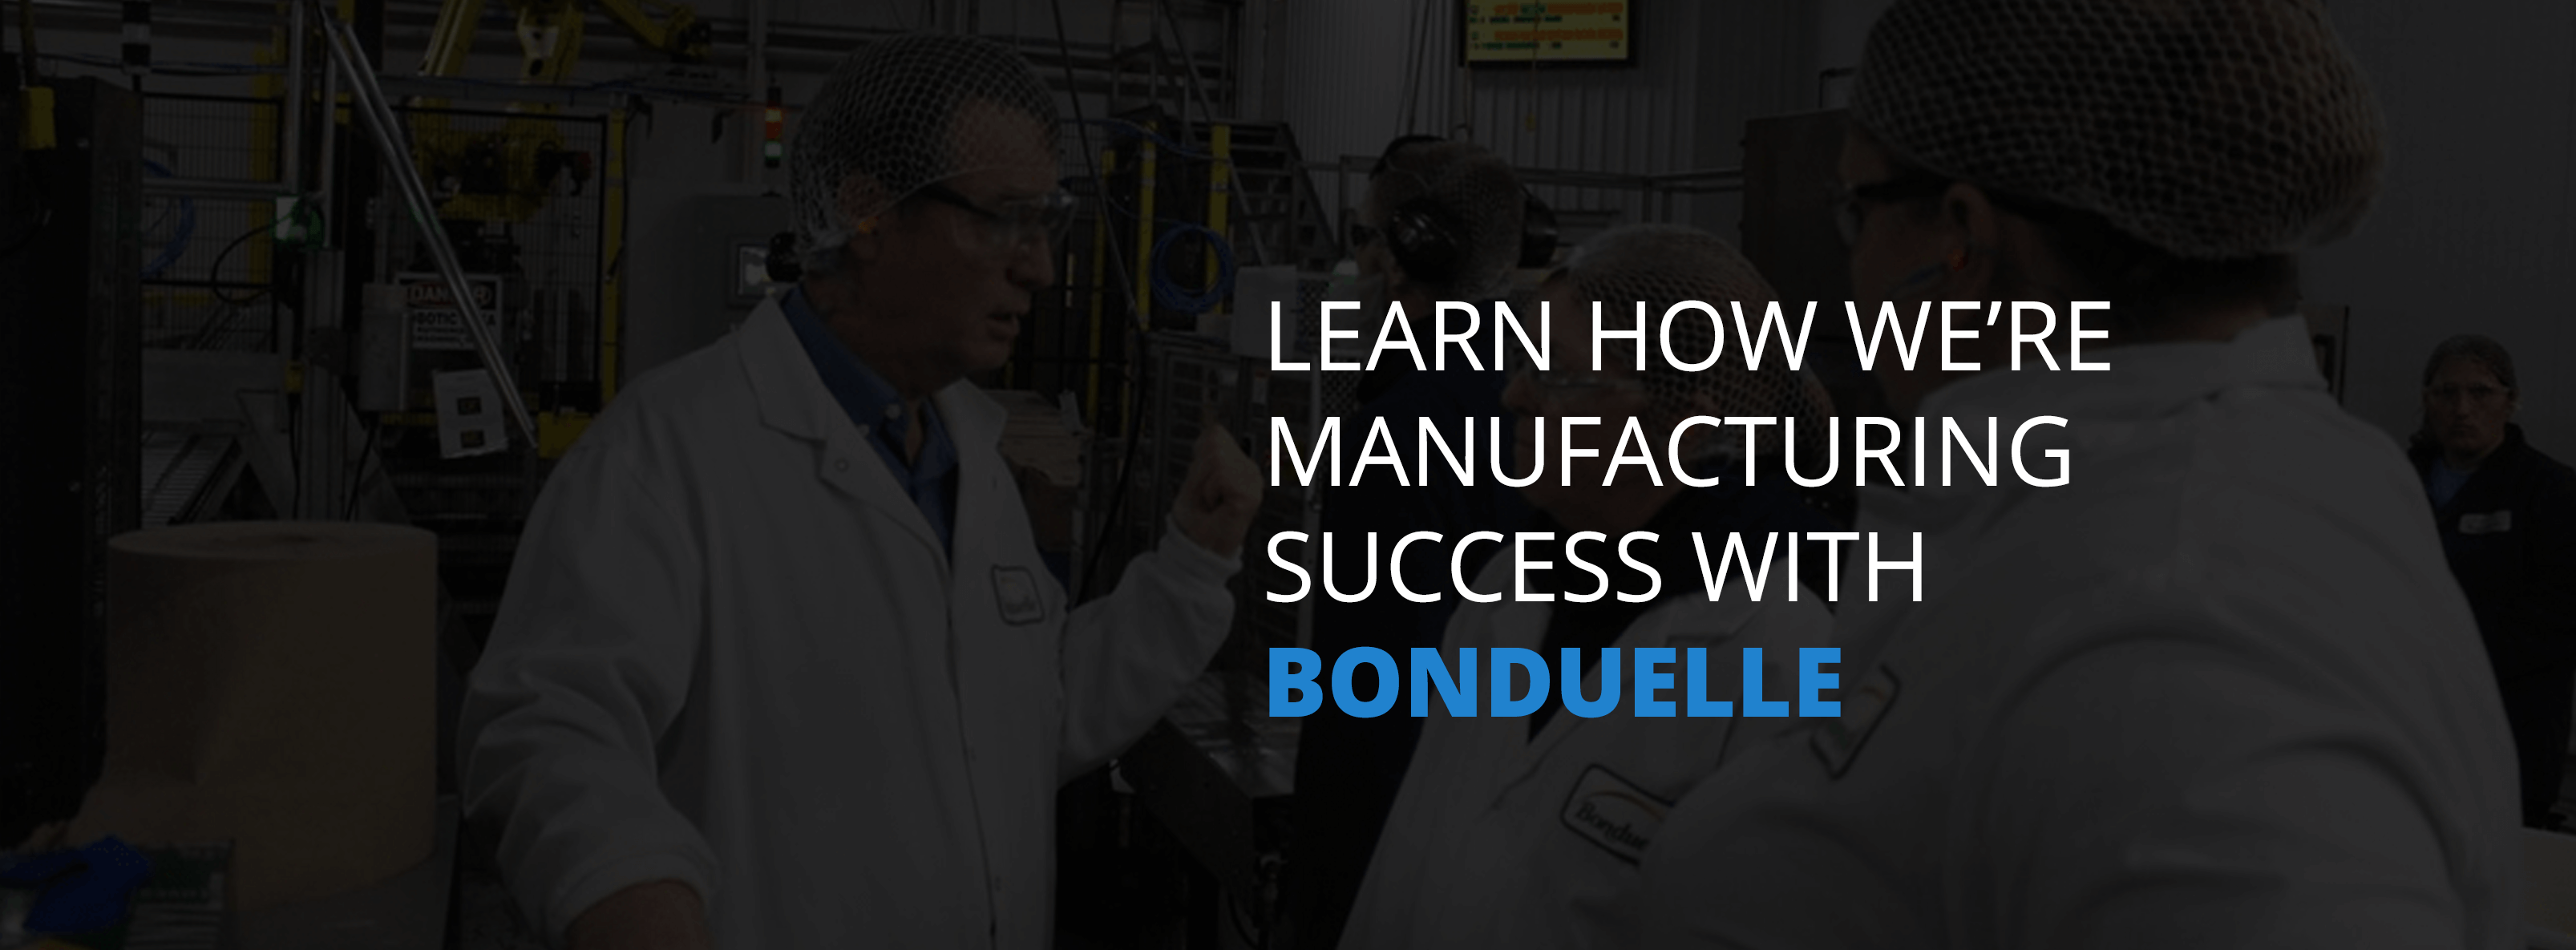 Learn how we're manufacturing success with bonduelle